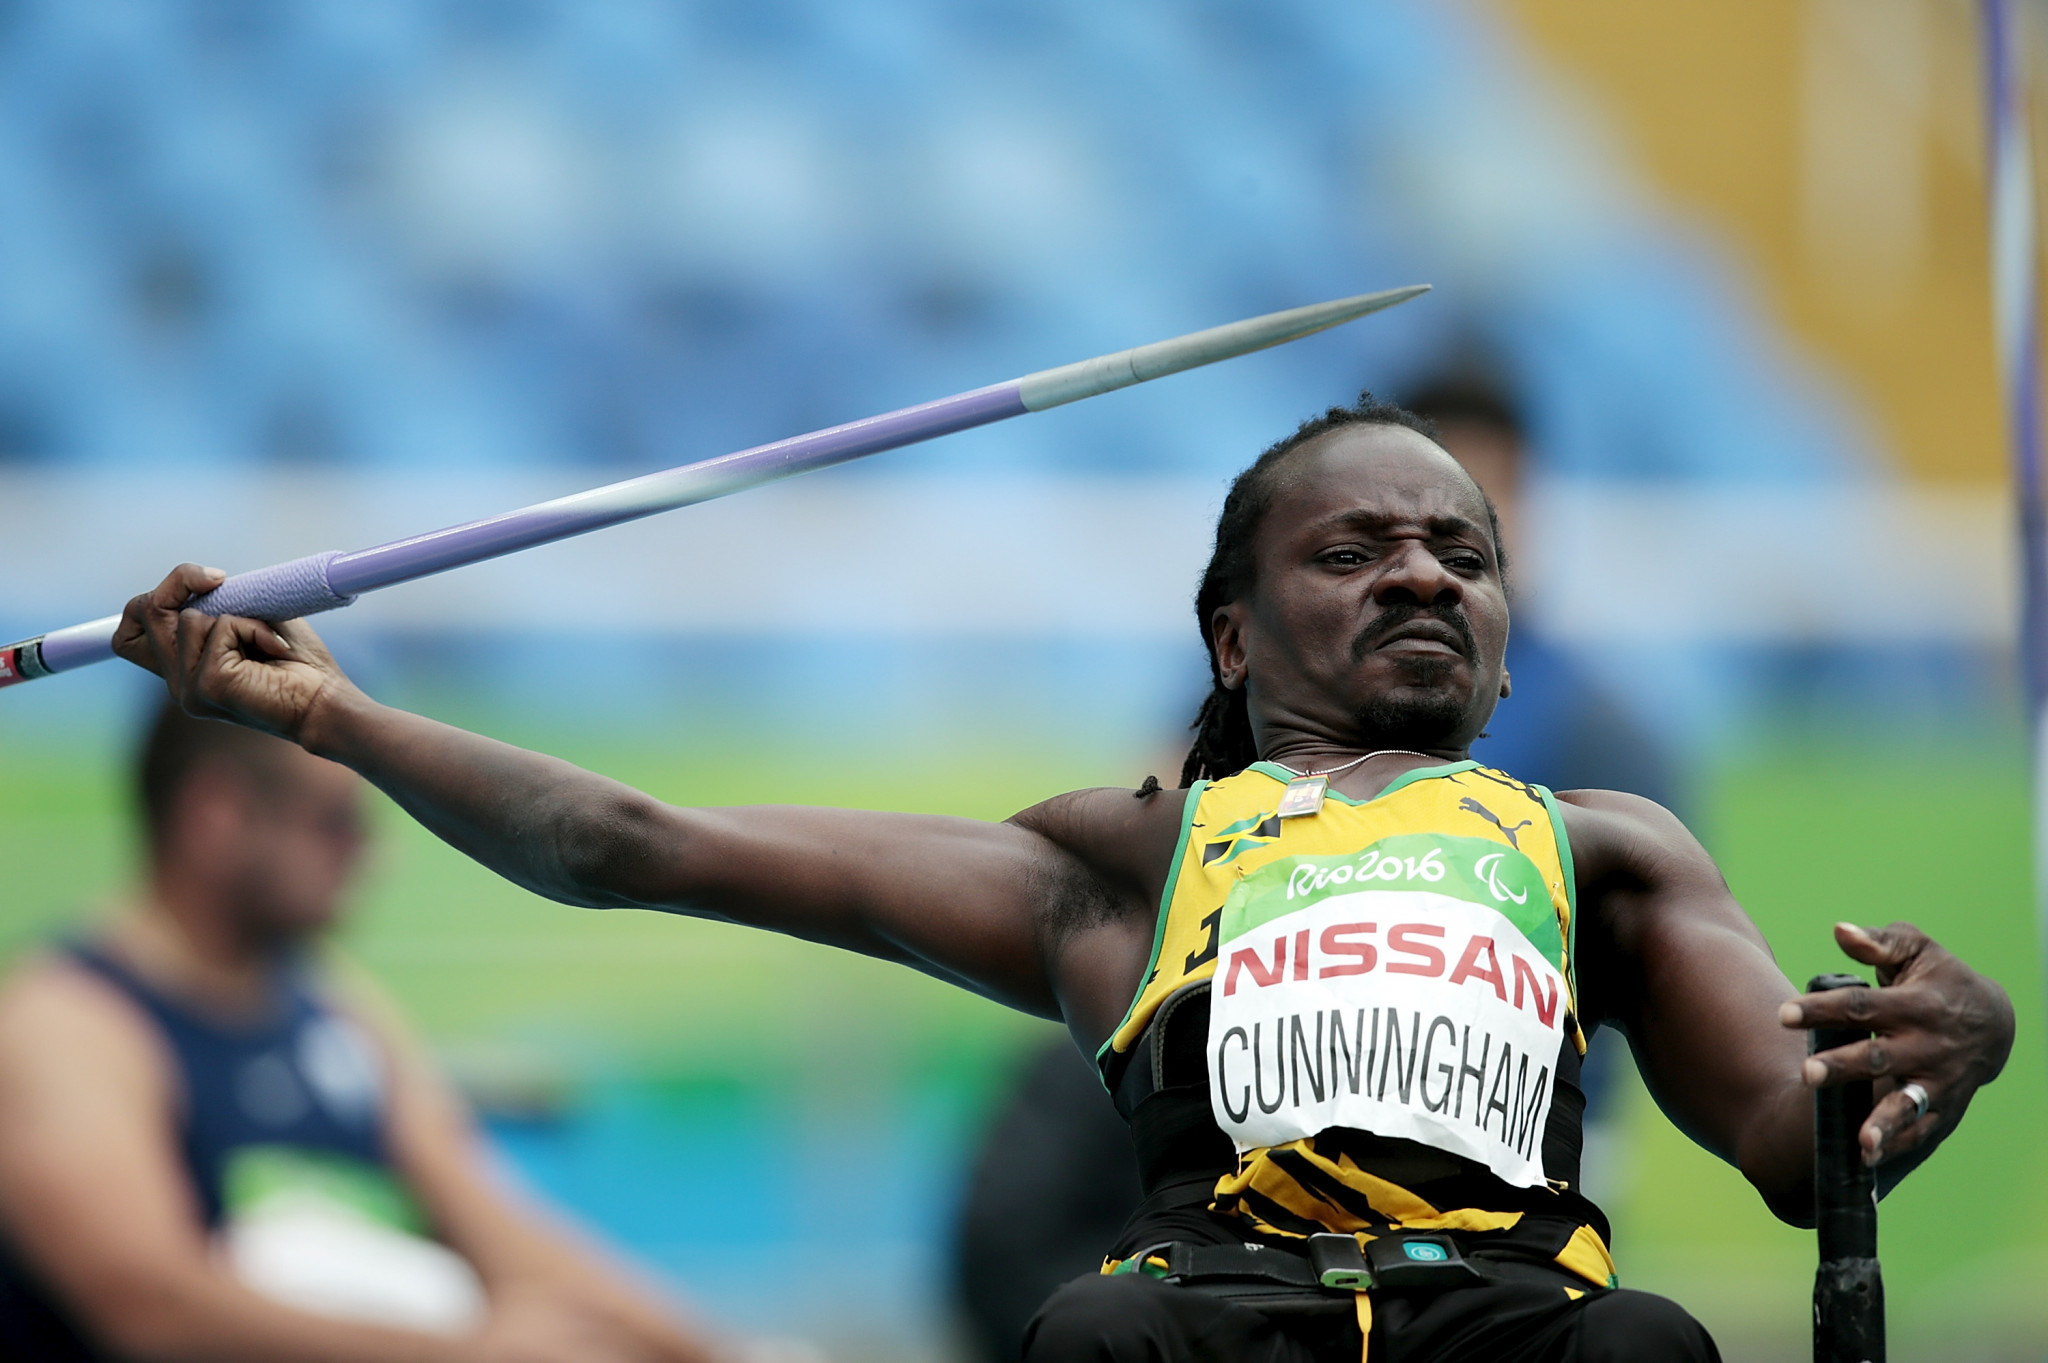 Alphanso Cunningham earned Jamaica's last Paralympic gold at London 2012 ©Getty Images